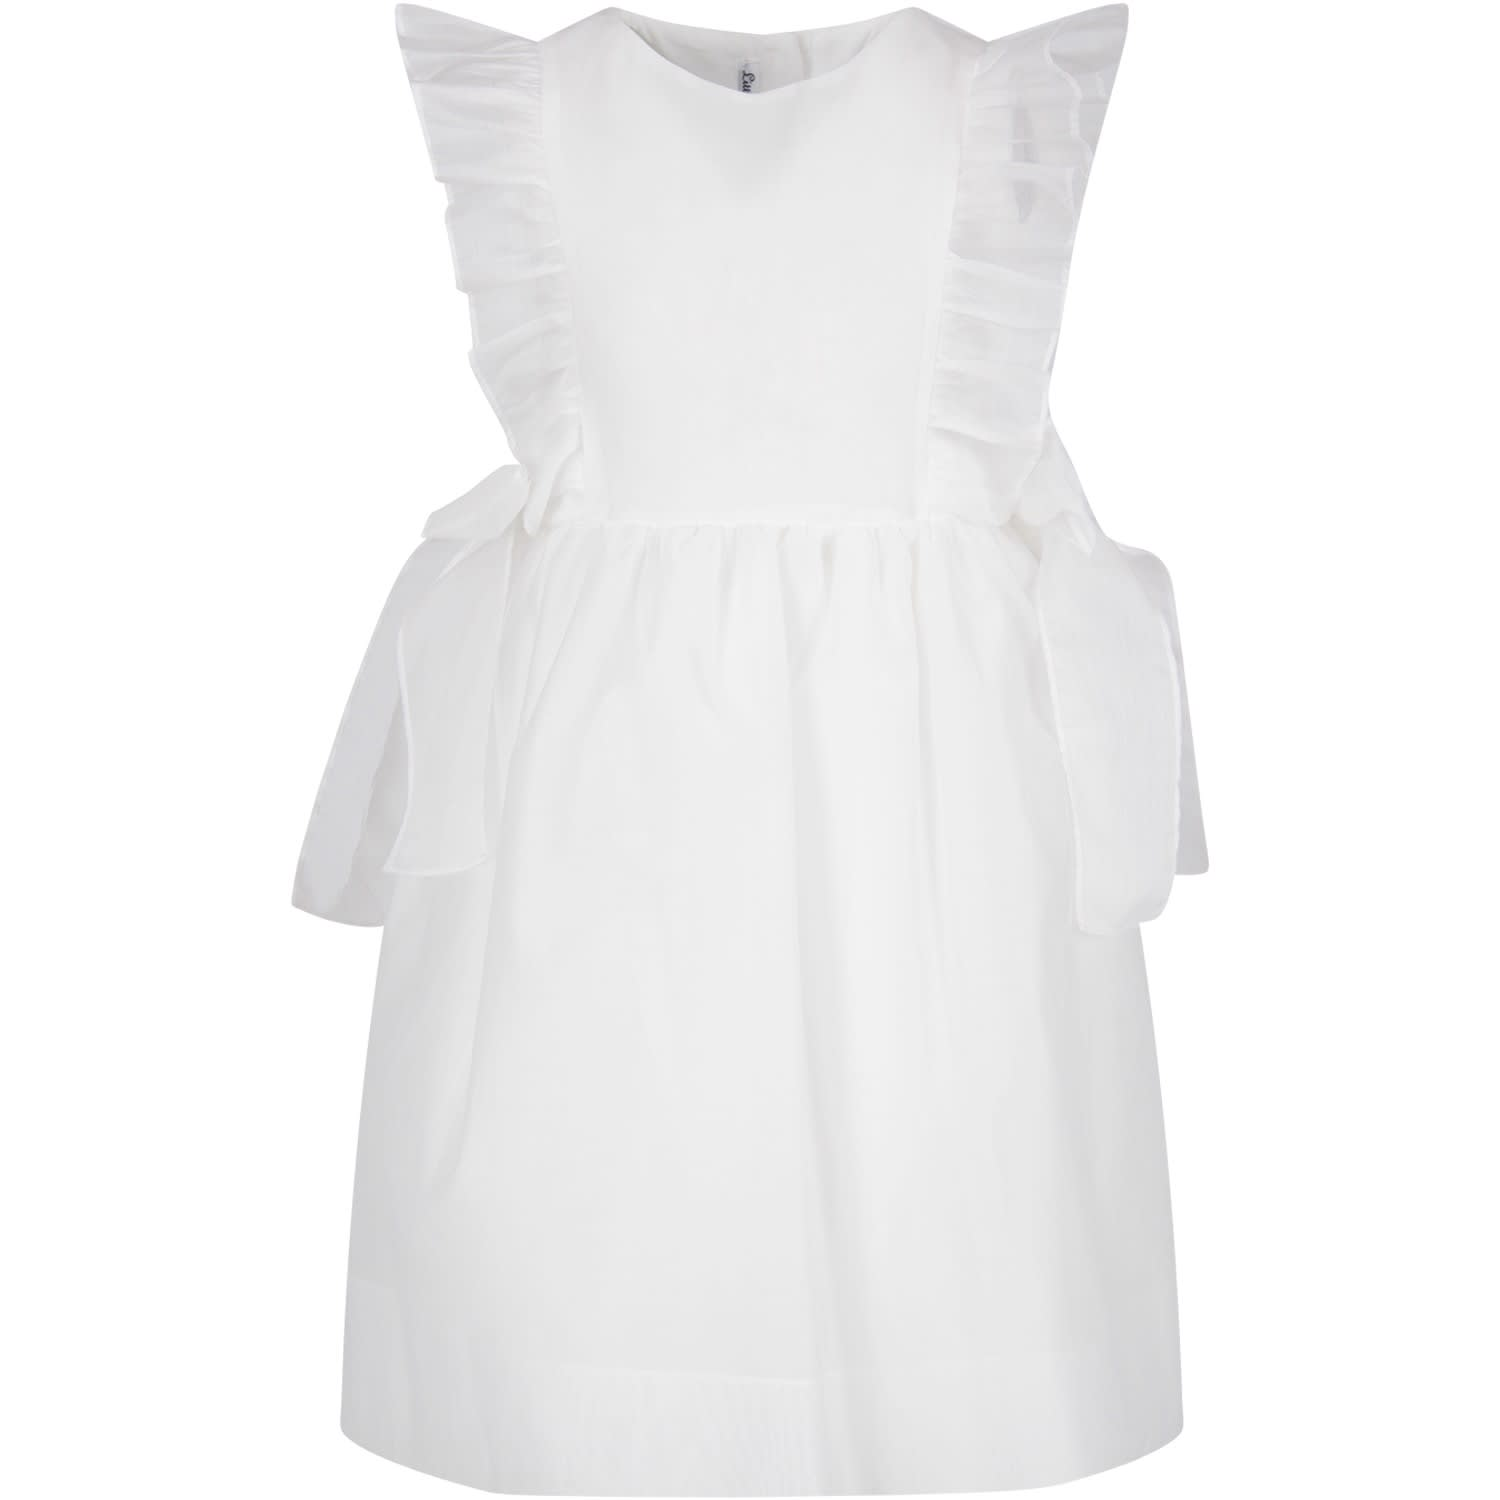 Little Bear White Girl Dress With Bows